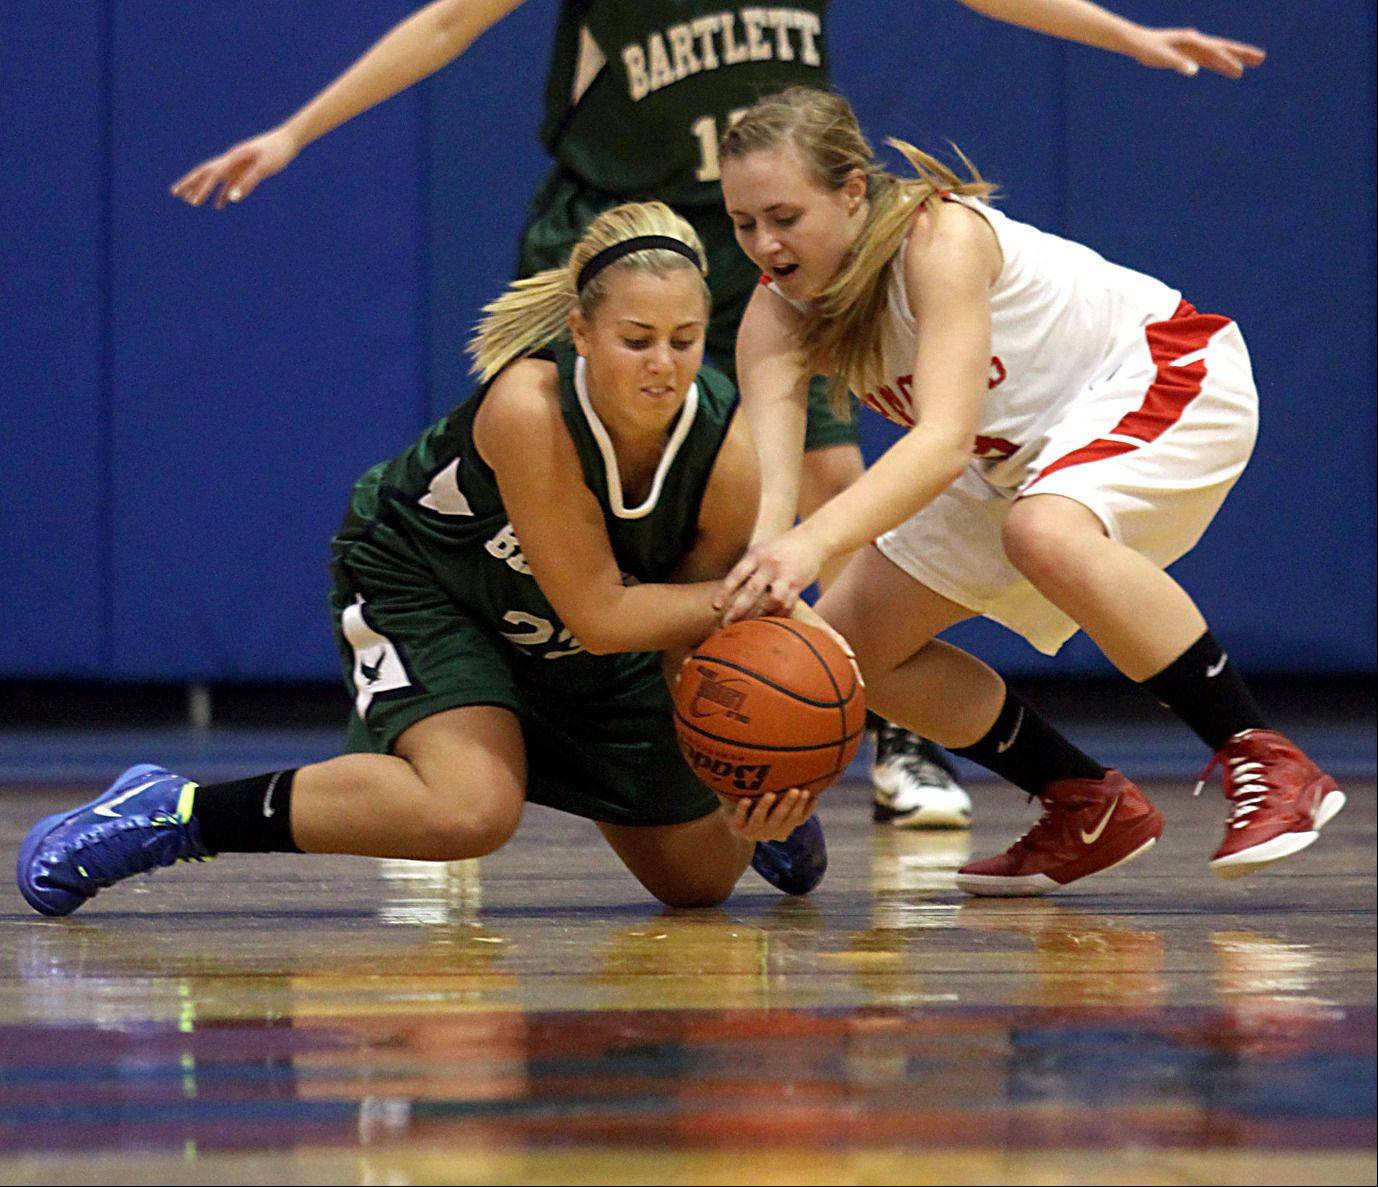 Dundee-Crown's Carlin Faulkner, right, and Bartlett's Ashley Johnson, left, scramble for a loose ball during Monday's basketball game in Carpentersville.